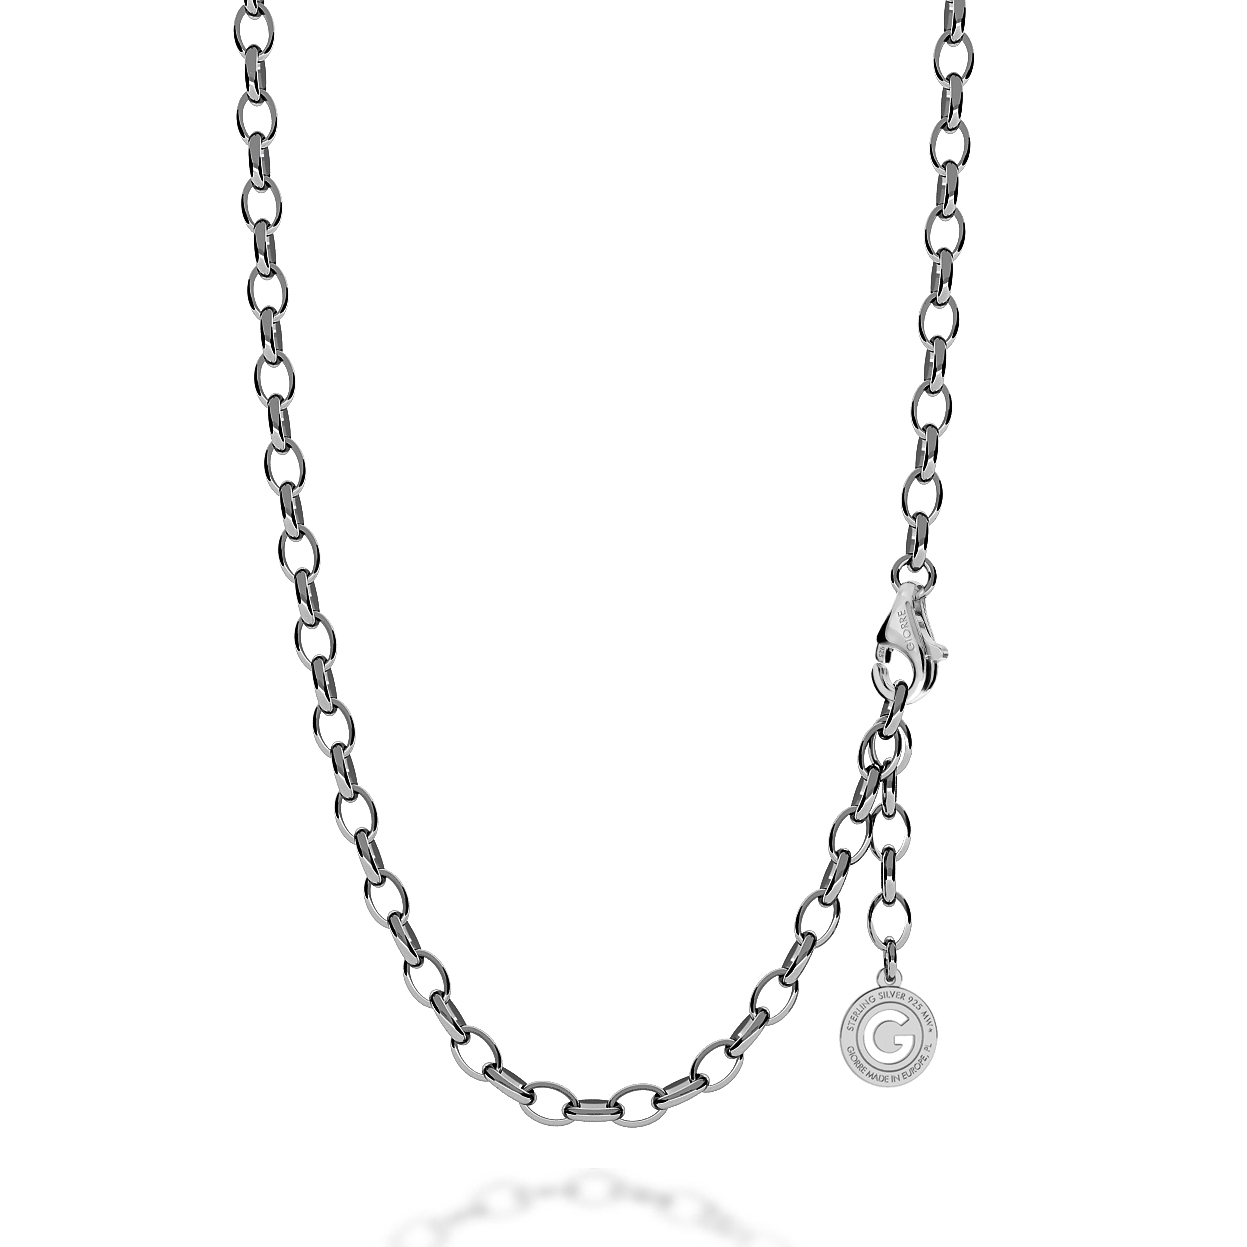 STERLING SILVER NECKLACE 55-65 CM BLACK RHODIUM, LIGHT RHODIUM CLASP, LINK 7X5 MM